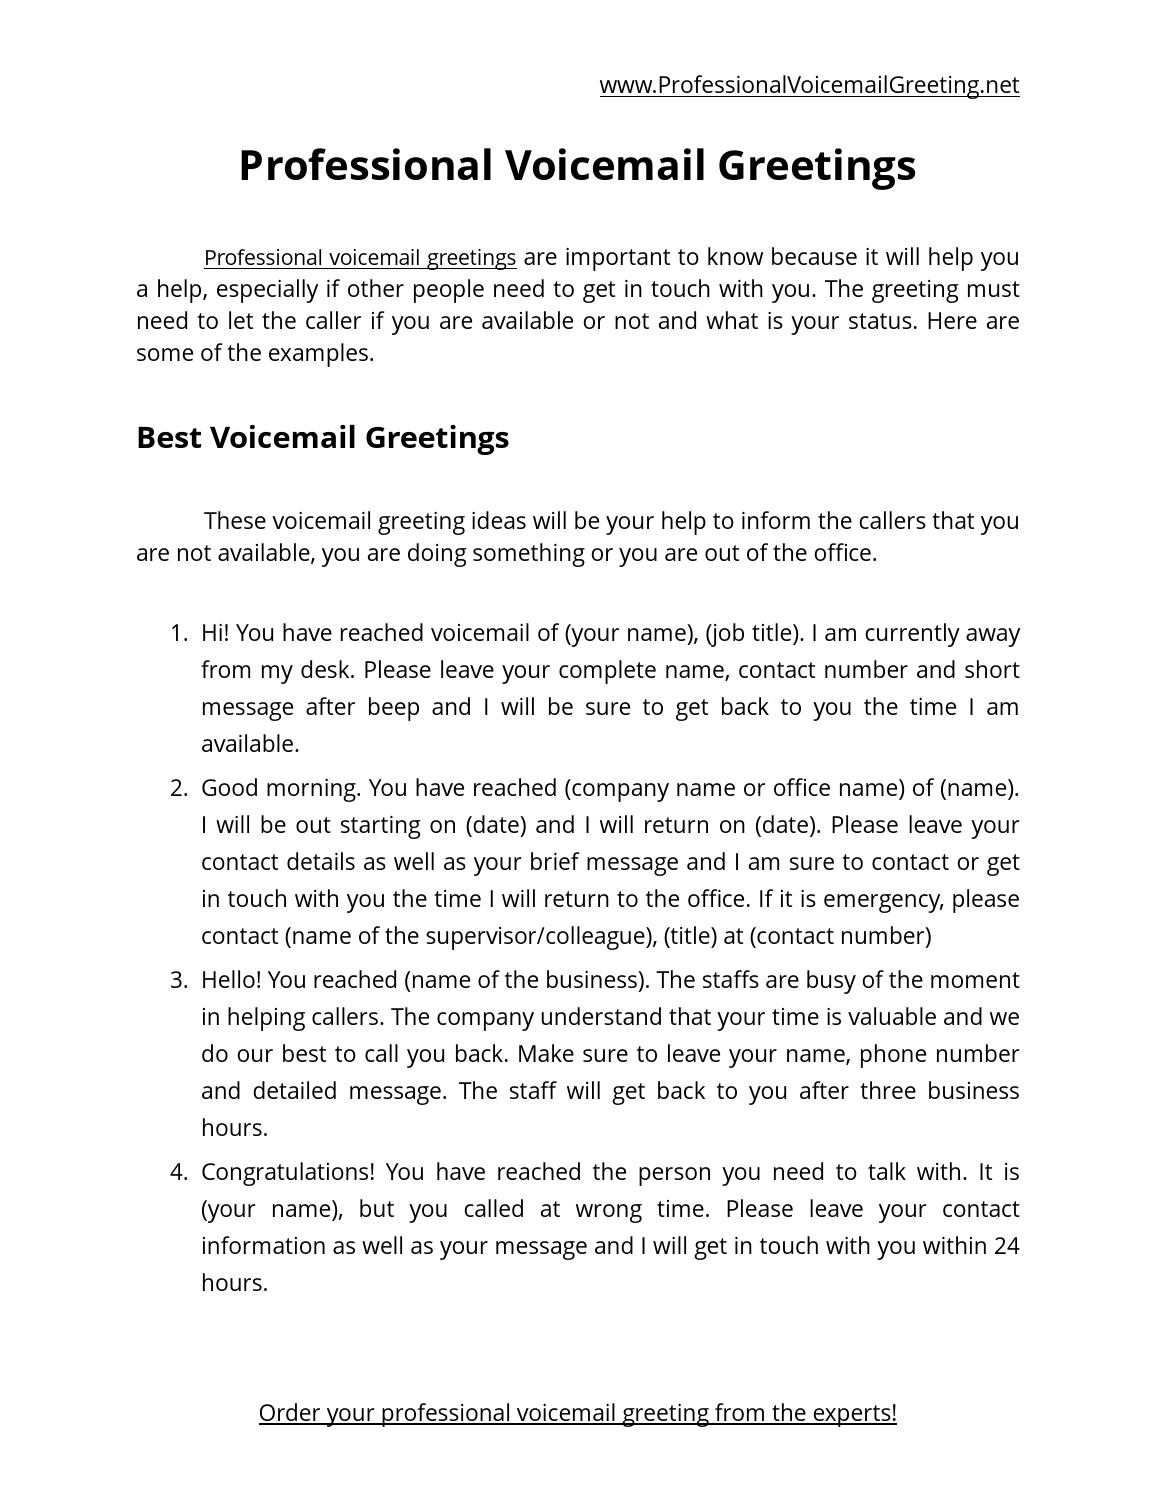 50 Professional Voicemail Greetings By Voice Mail Issuu